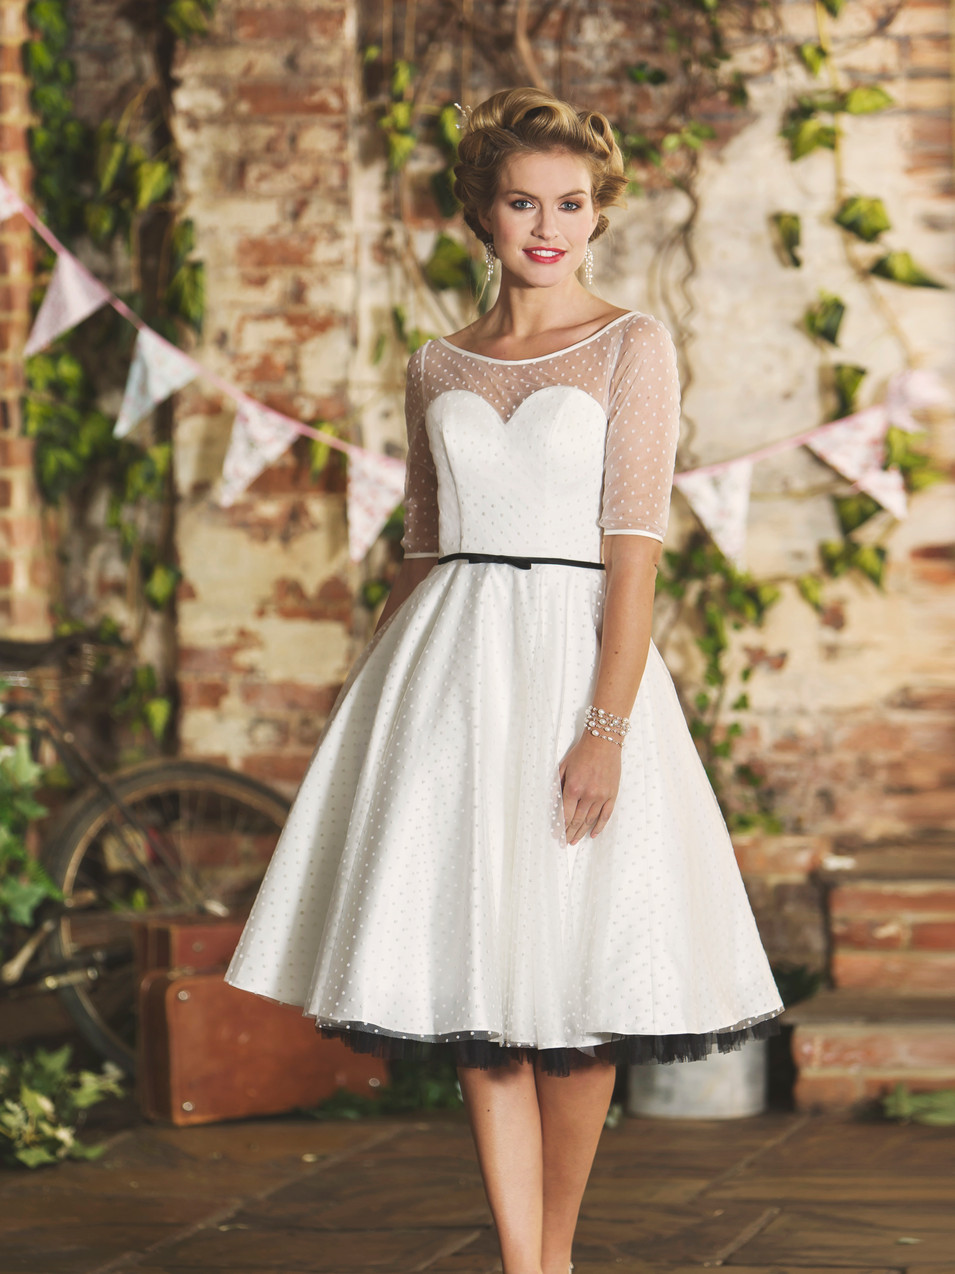 Brooklyn by Brighton Belle - £799